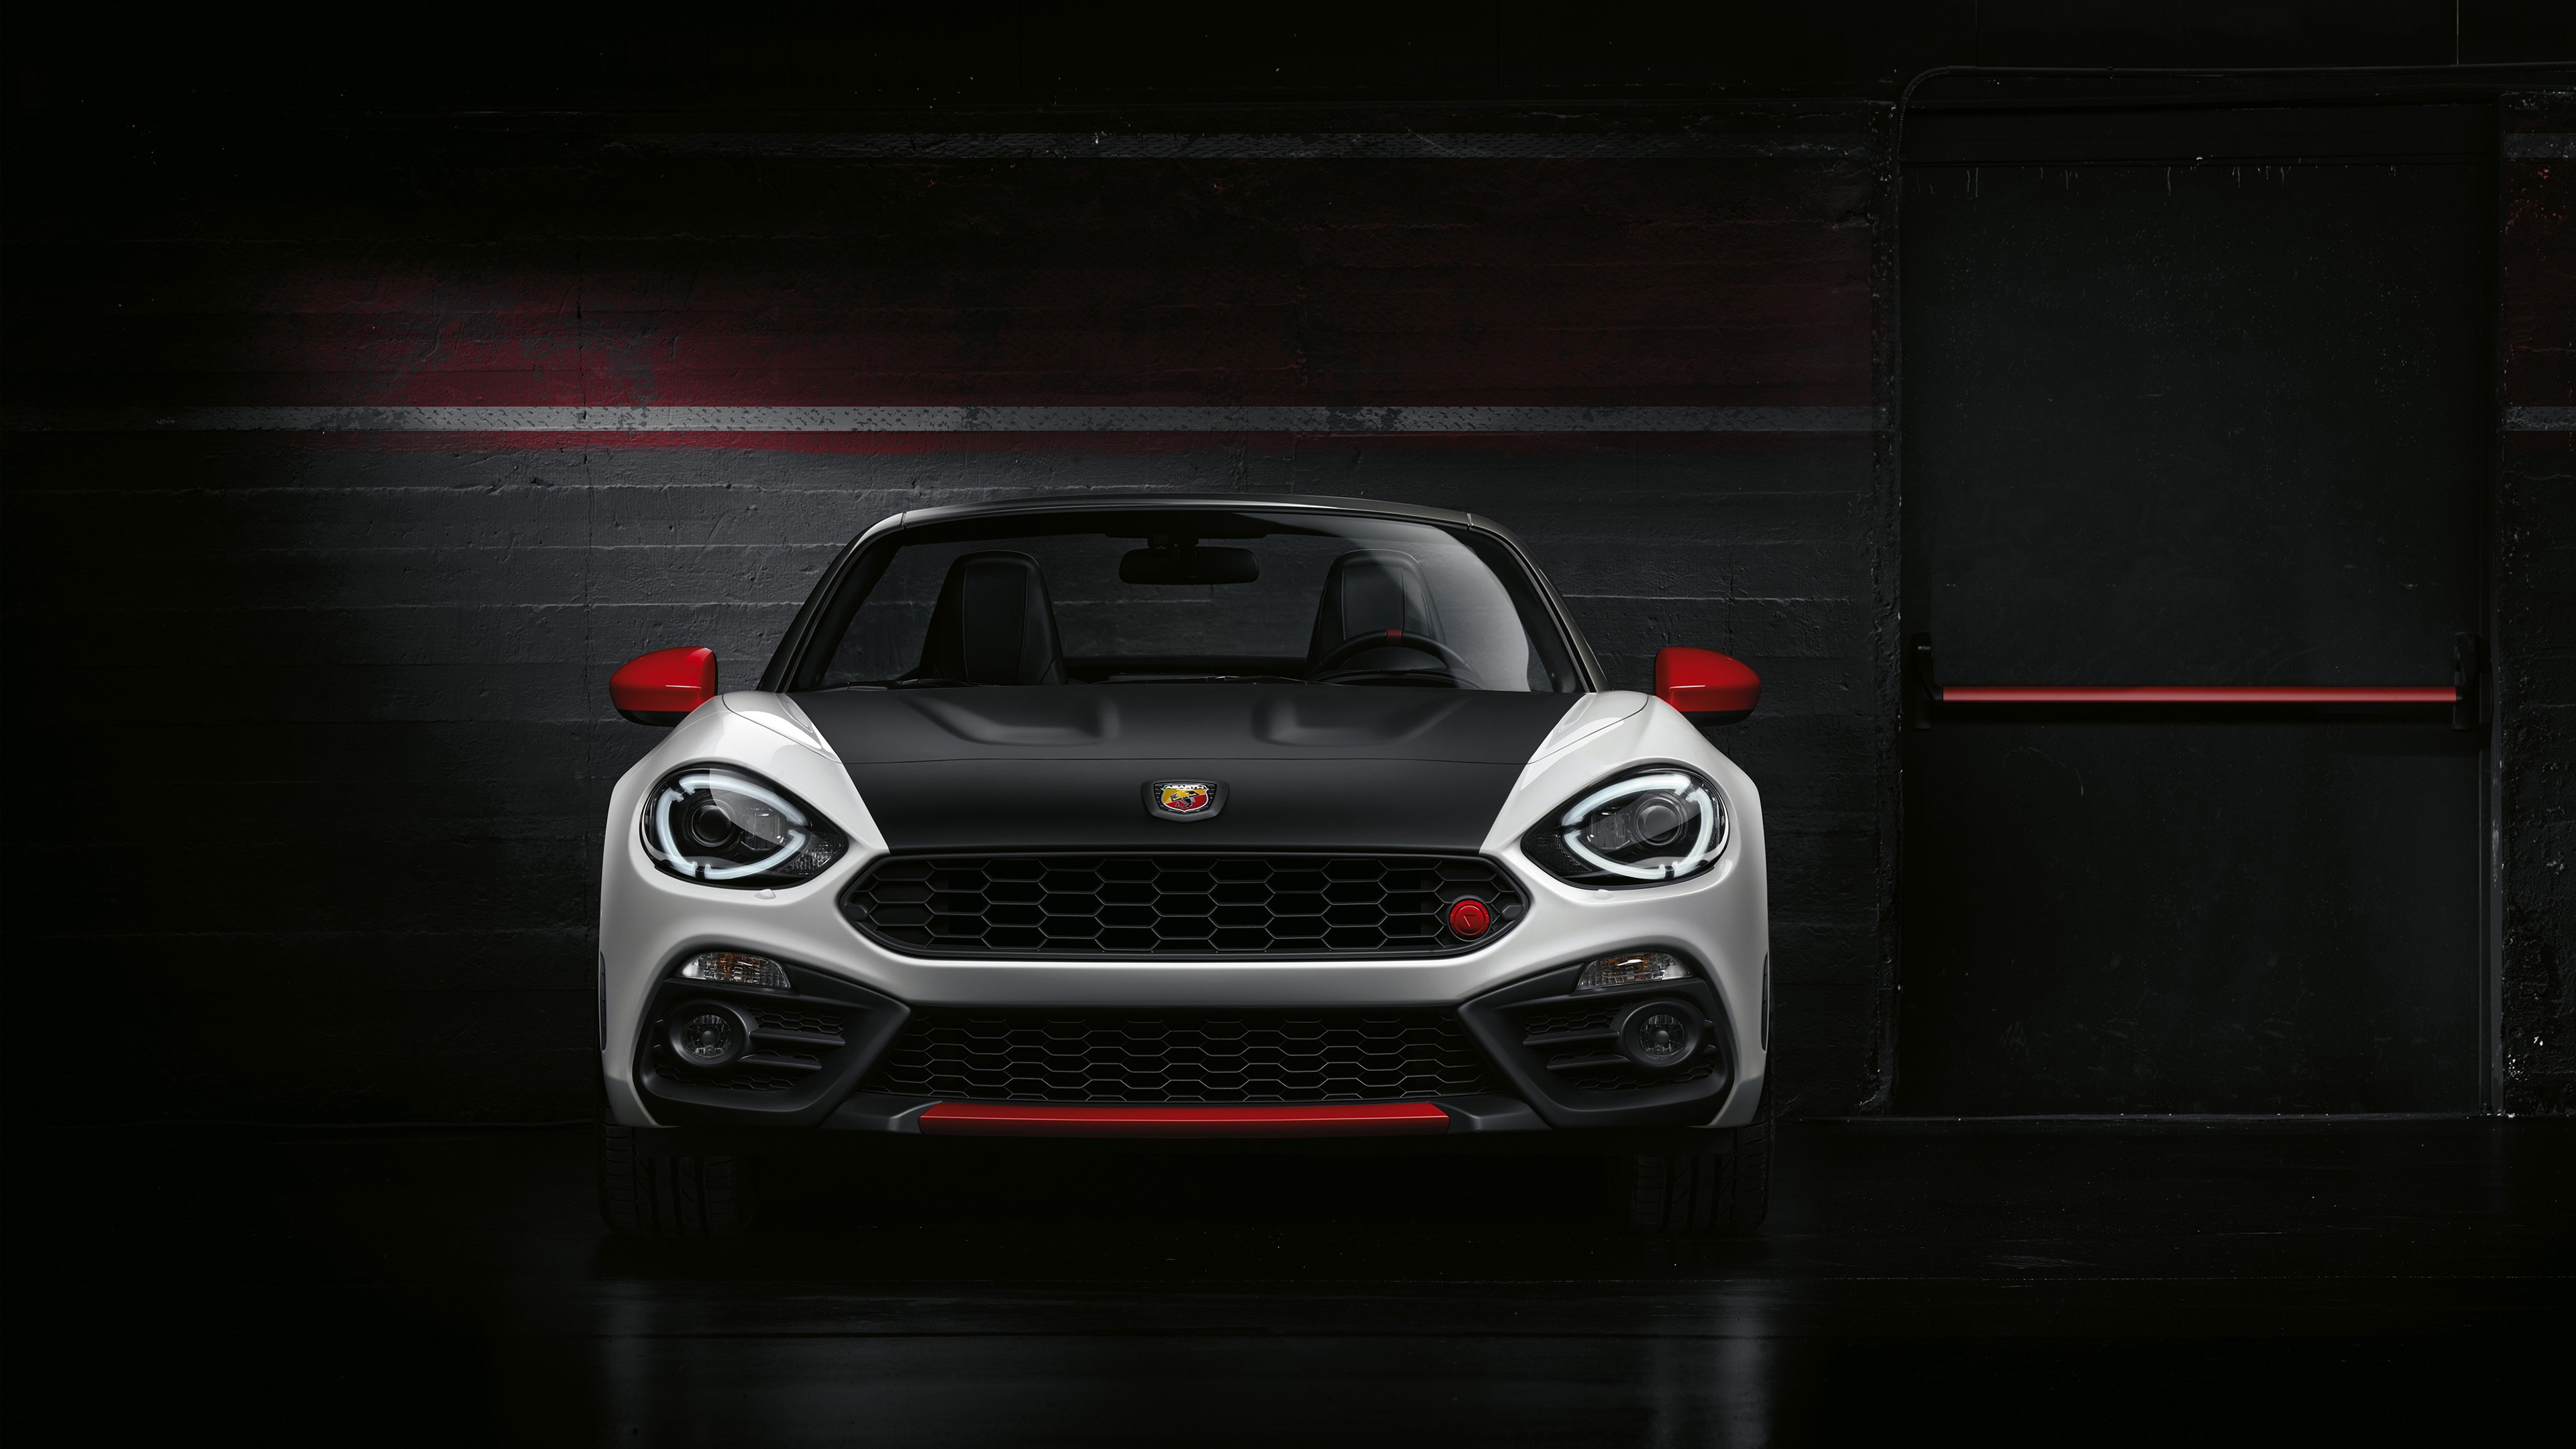 2017 fiat 124 spider abarth wallpaper hd car wallpapers. Black Bedroom Furniture Sets. Home Design Ideas